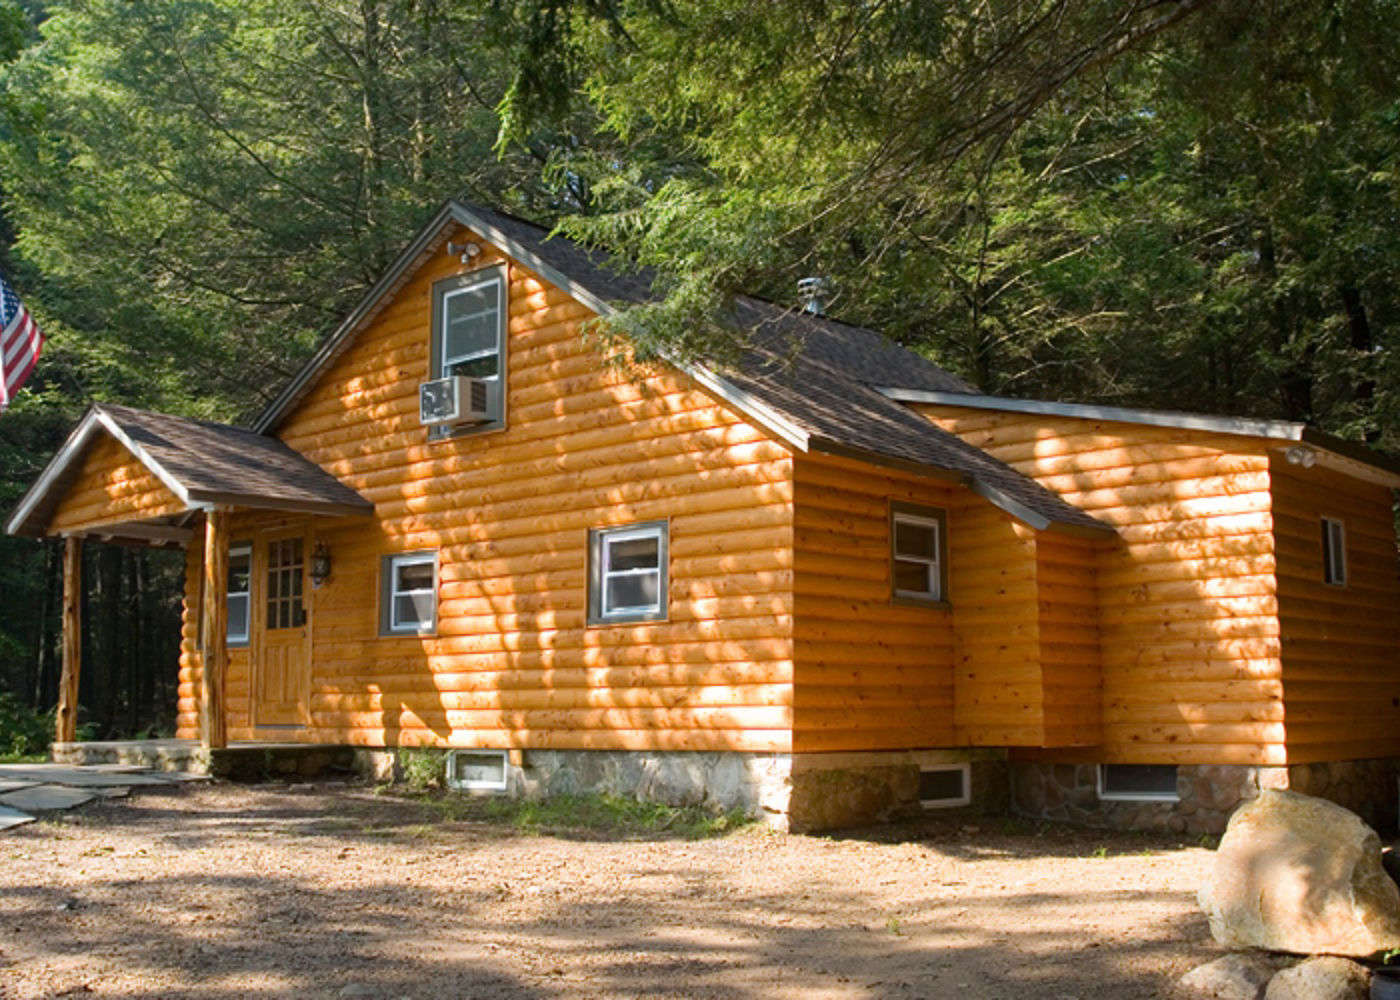 property log new mountain cabins lake private q cabin pocono ha beds k wifi mountains kitchen and pool